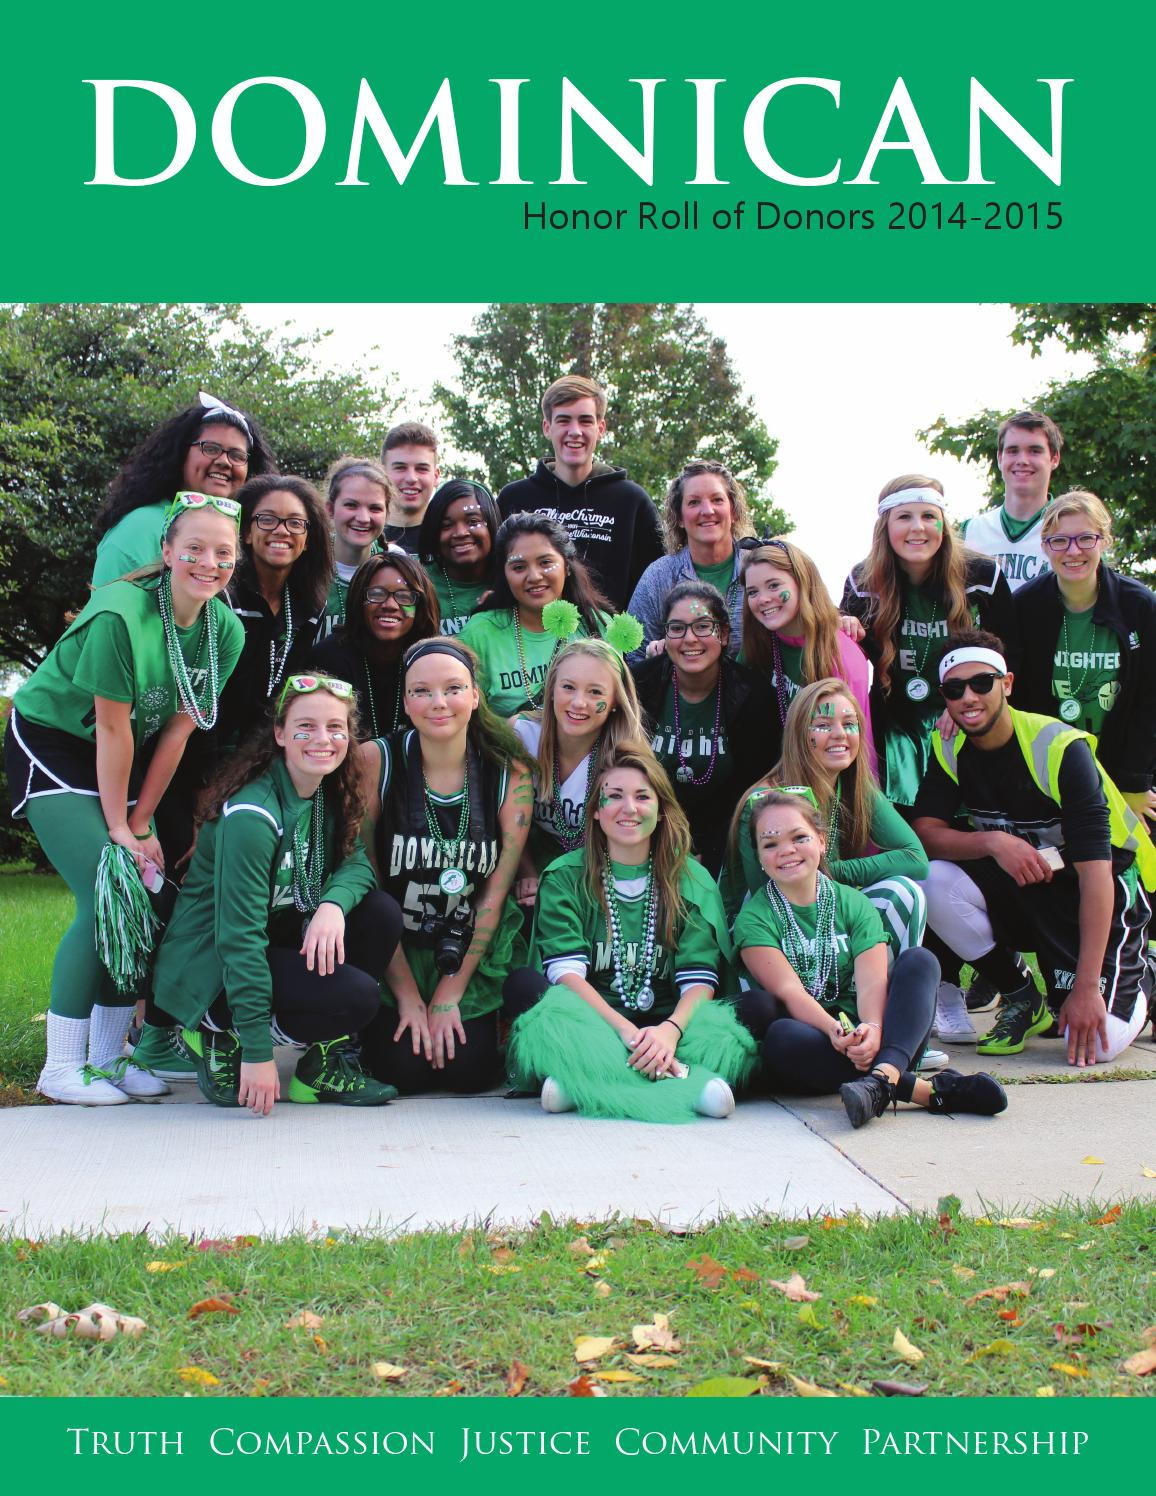 Honor roll of donors 2015 by Dominican High School - issuu